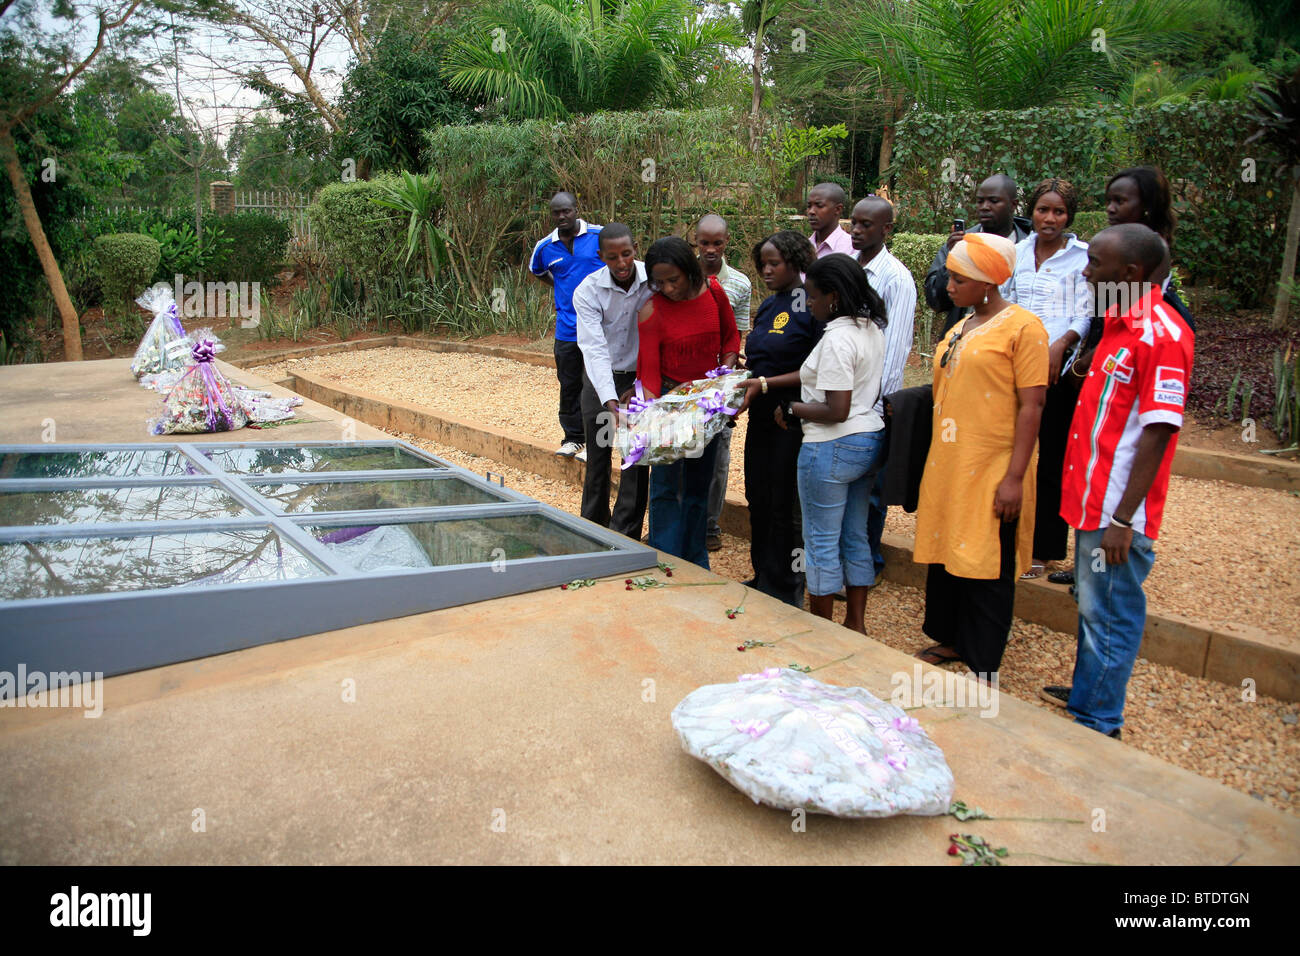 Kigali Memorial Centre in Kigali, Rwanda, a museum and memorial to the one million Rwandans killed in the 1994 genocide - Stock Image